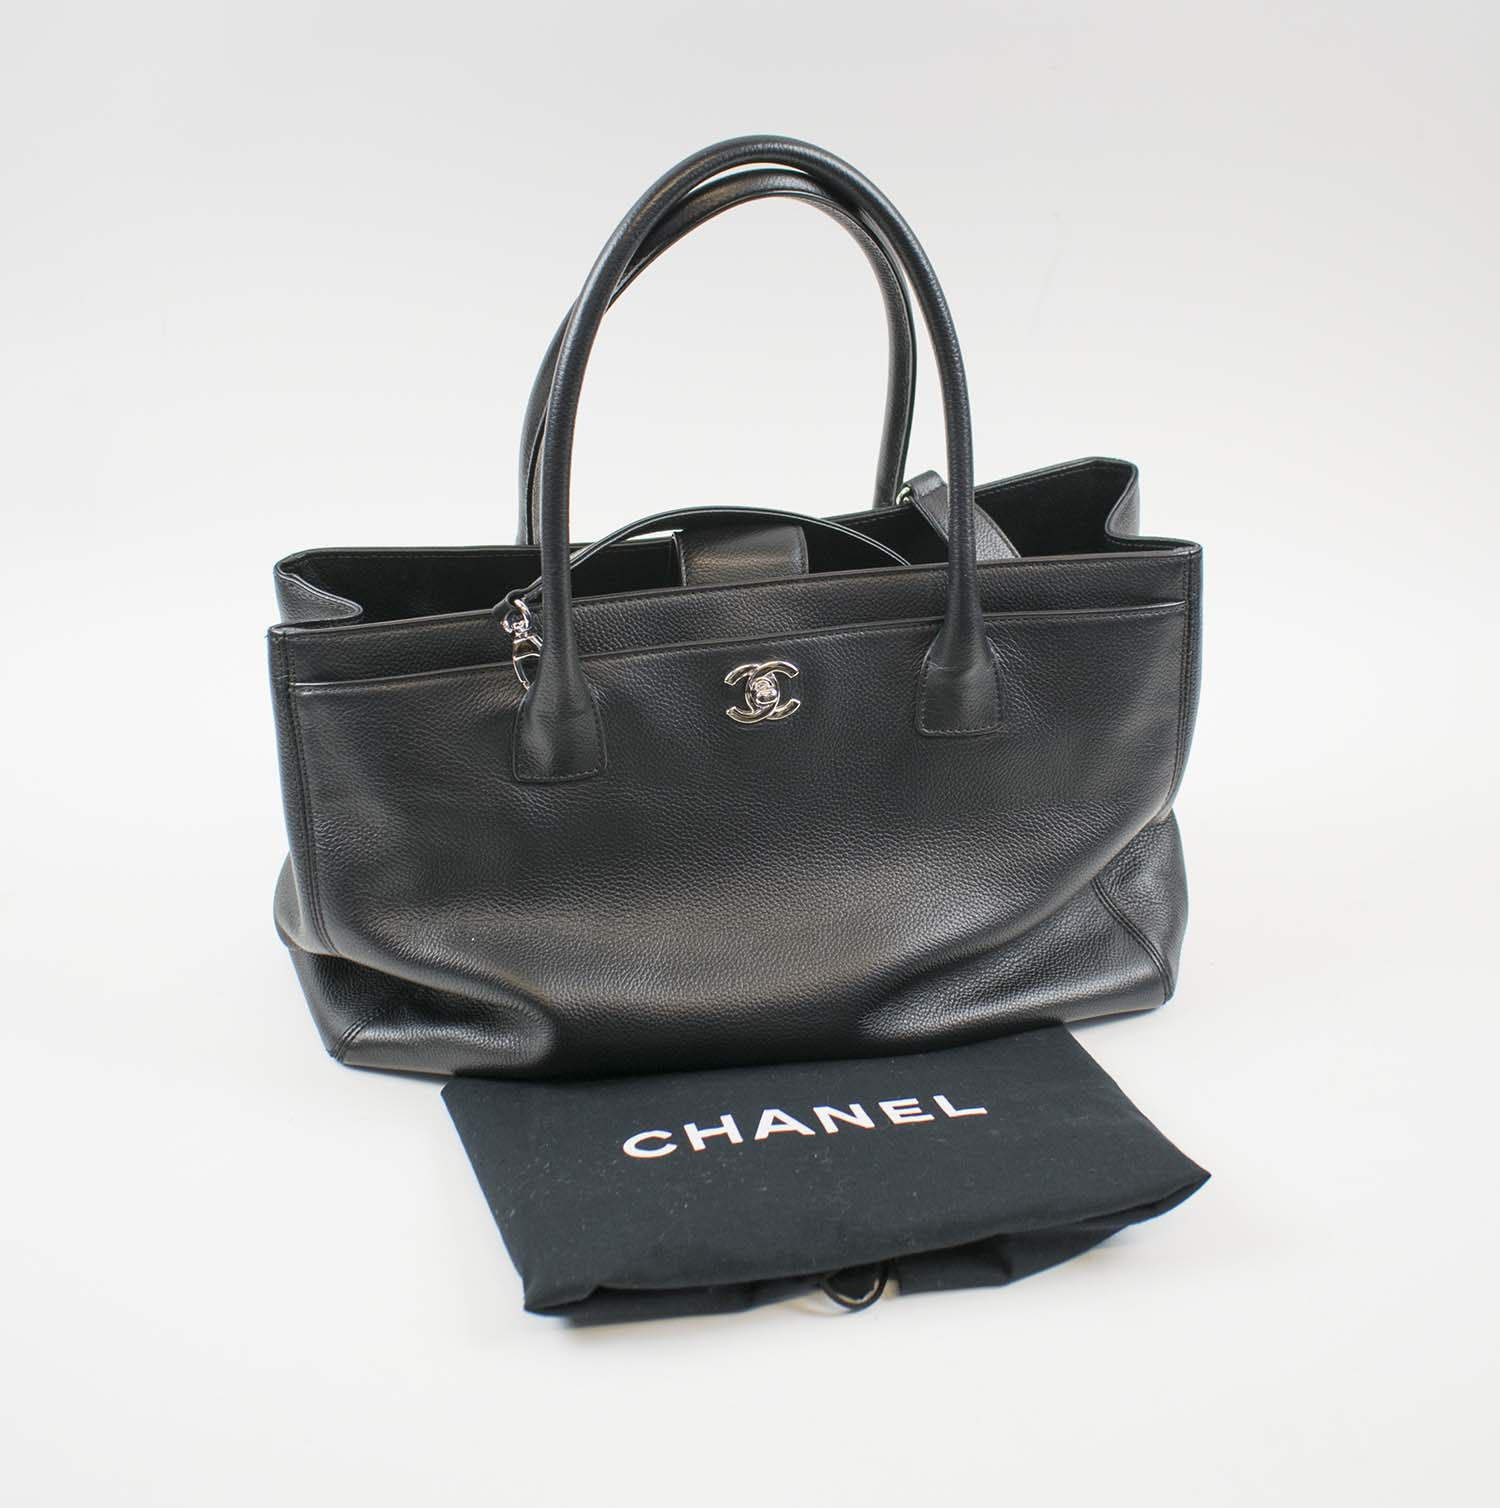 bfe2b9661190 CHANEL EXECUTIVE TOTE BAG, black caviar leather with silver tone ...